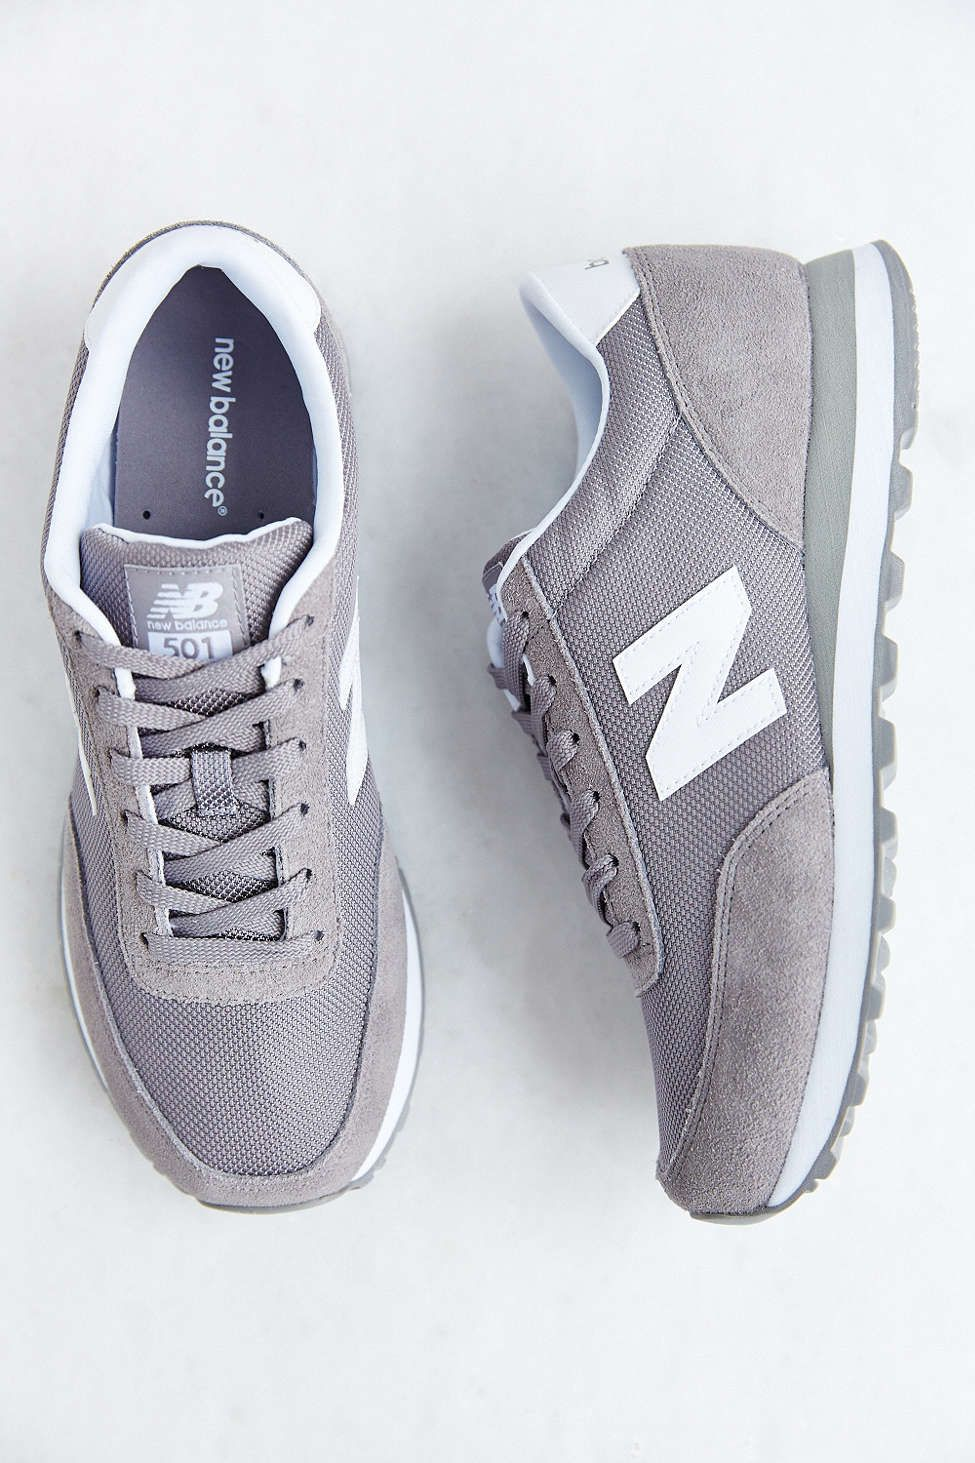 17eab1dd65b16 New Balance 501 Classic Running Sneaker | Shoes in 2019 | Shoes ...